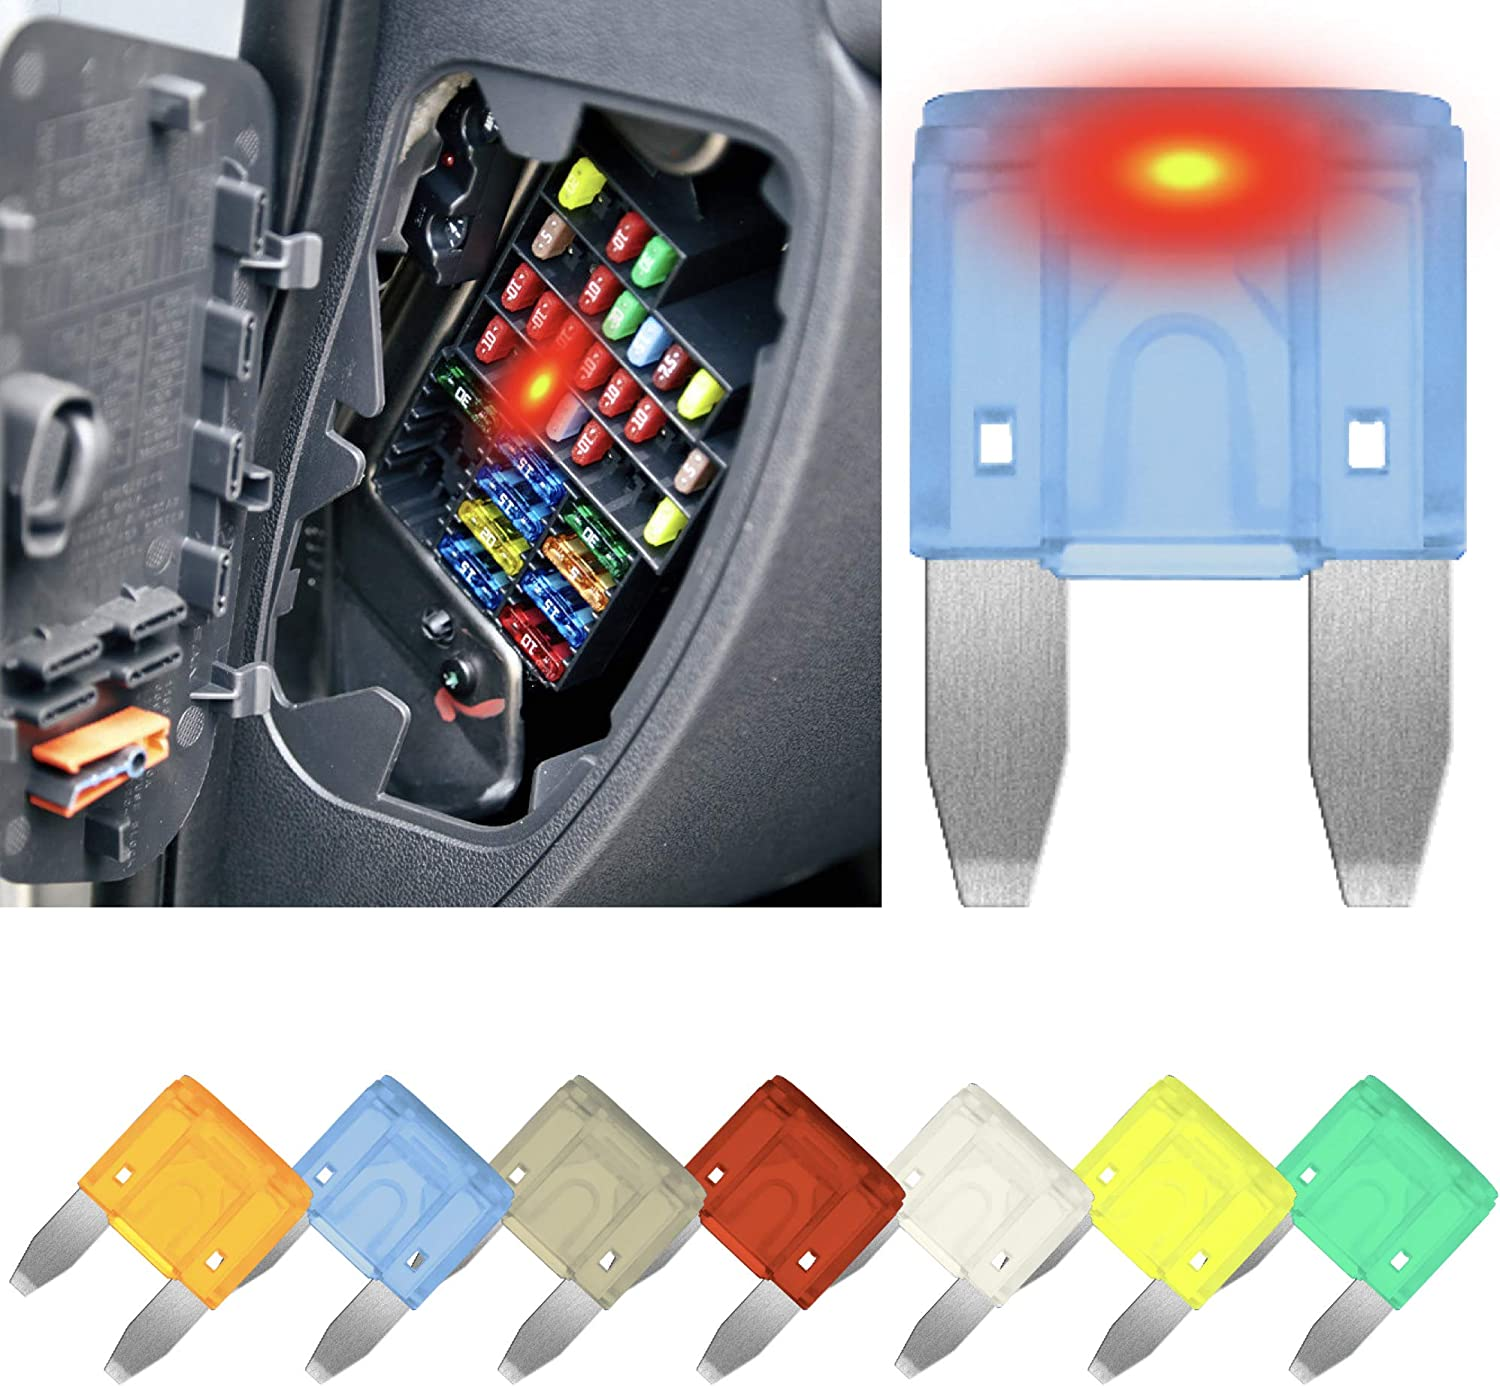 10 pcs. Smart GLOW Fuse Easy Identification Carax Fuse Fuse MINI Blade 30A Fuses Replacement Kit Illuminating Indicator Fuse That Glow When Blown Car Fuse Automotive ATC//ATO